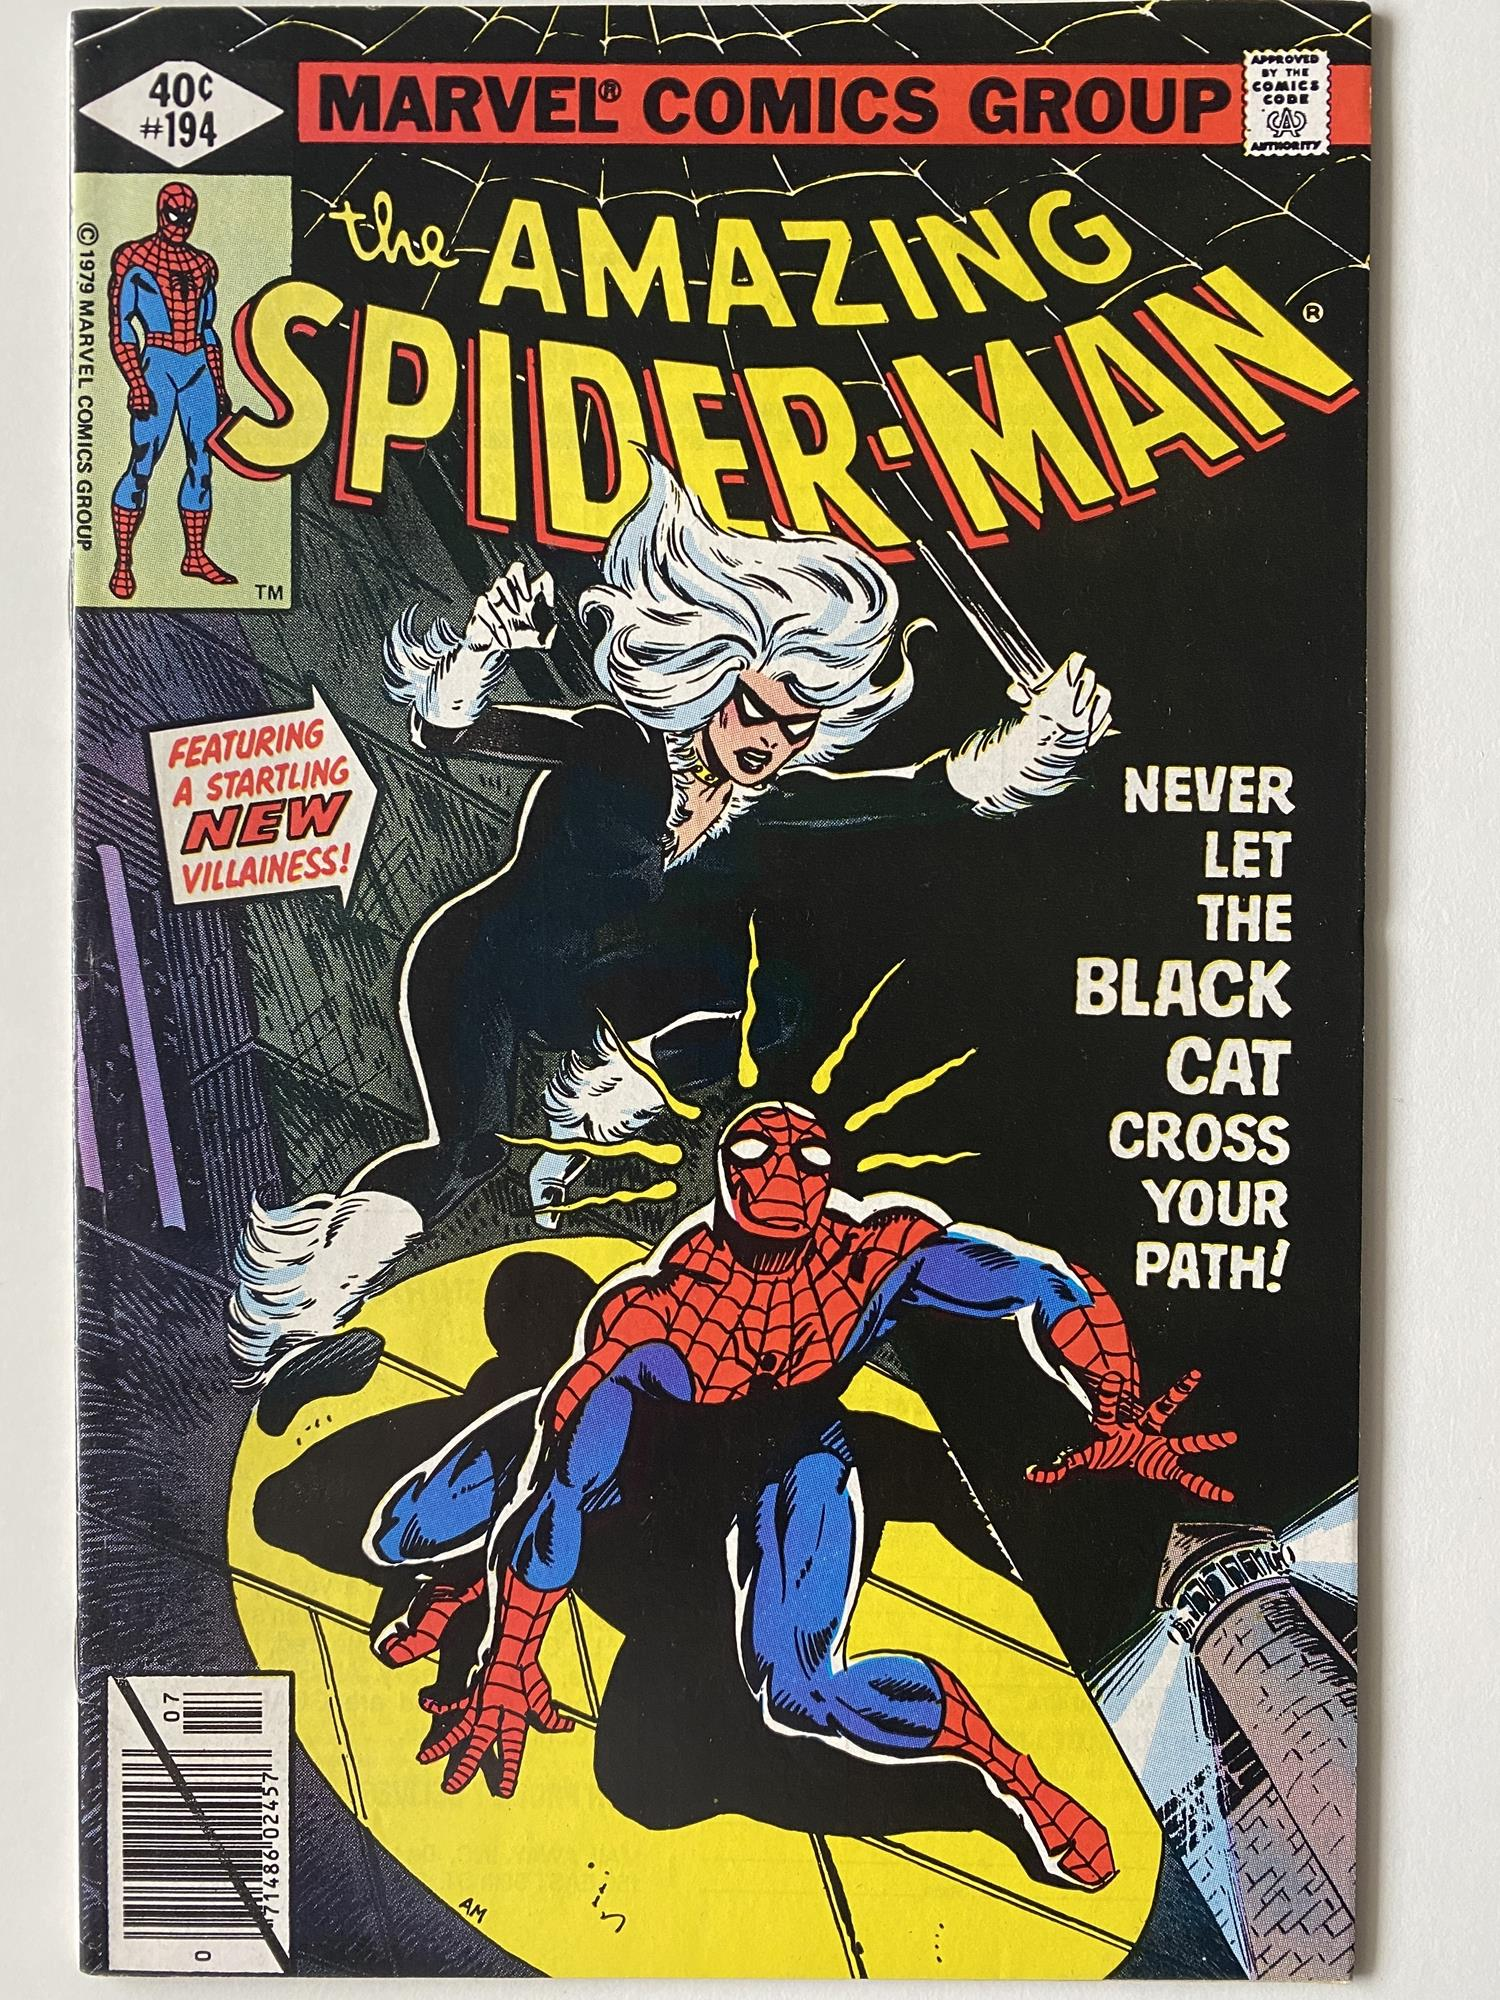 Lot 22 - AMAZING SPIDER-MAN # 194 (1979 - MARVEL - Cents Copy) - First appearance of the Black Cat + Mysterio